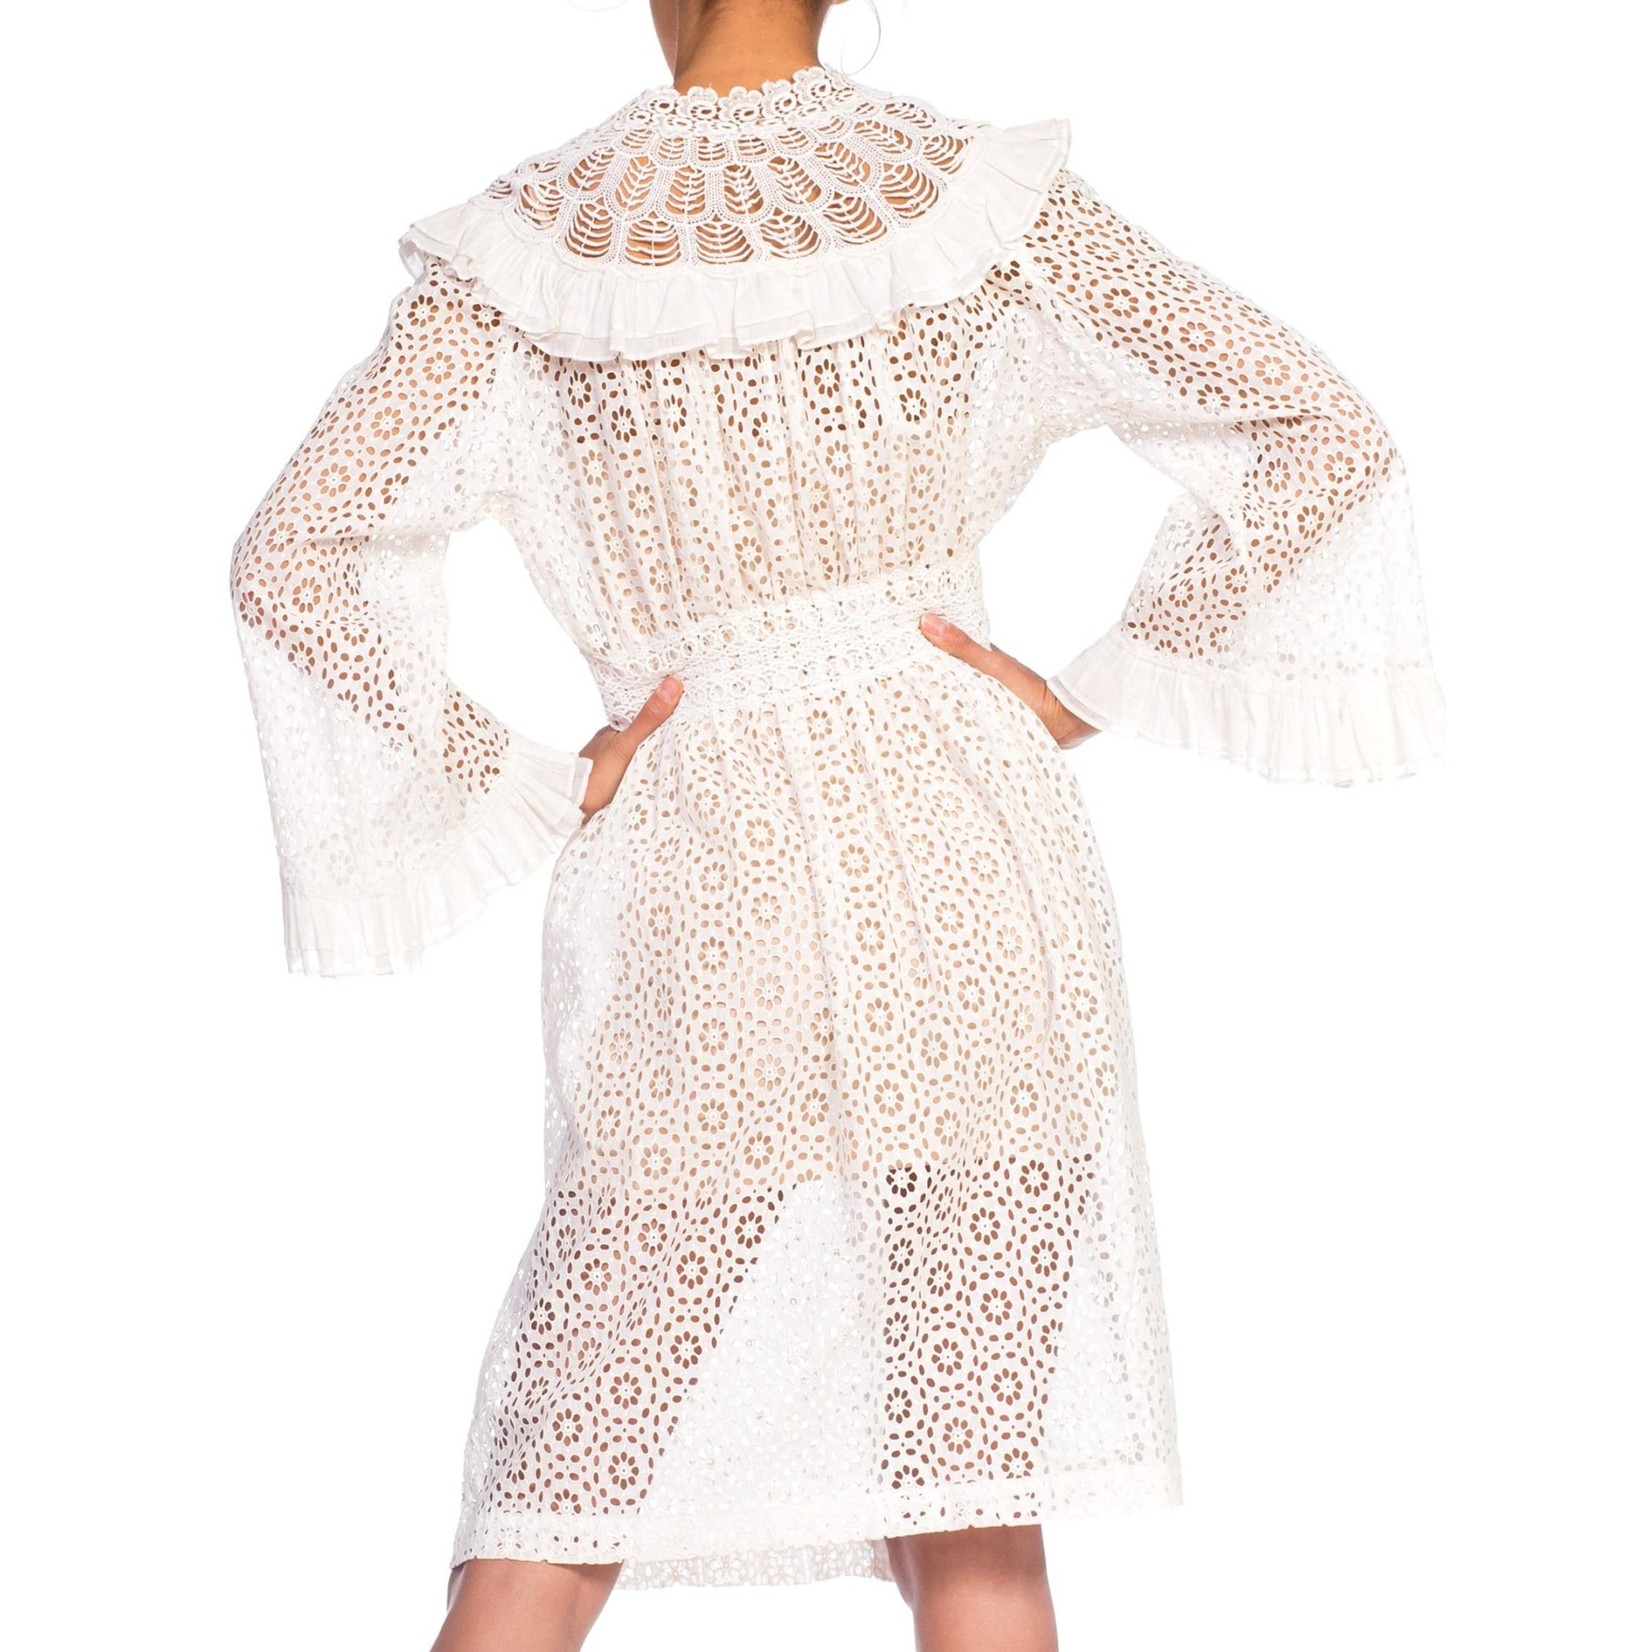 Wyld Blue Vintage MORPHEW COLLECTION White Organic Cotton Belle Sleeve Dress with Ruffle Detail Made from Victorian Eyelet Lace Duster